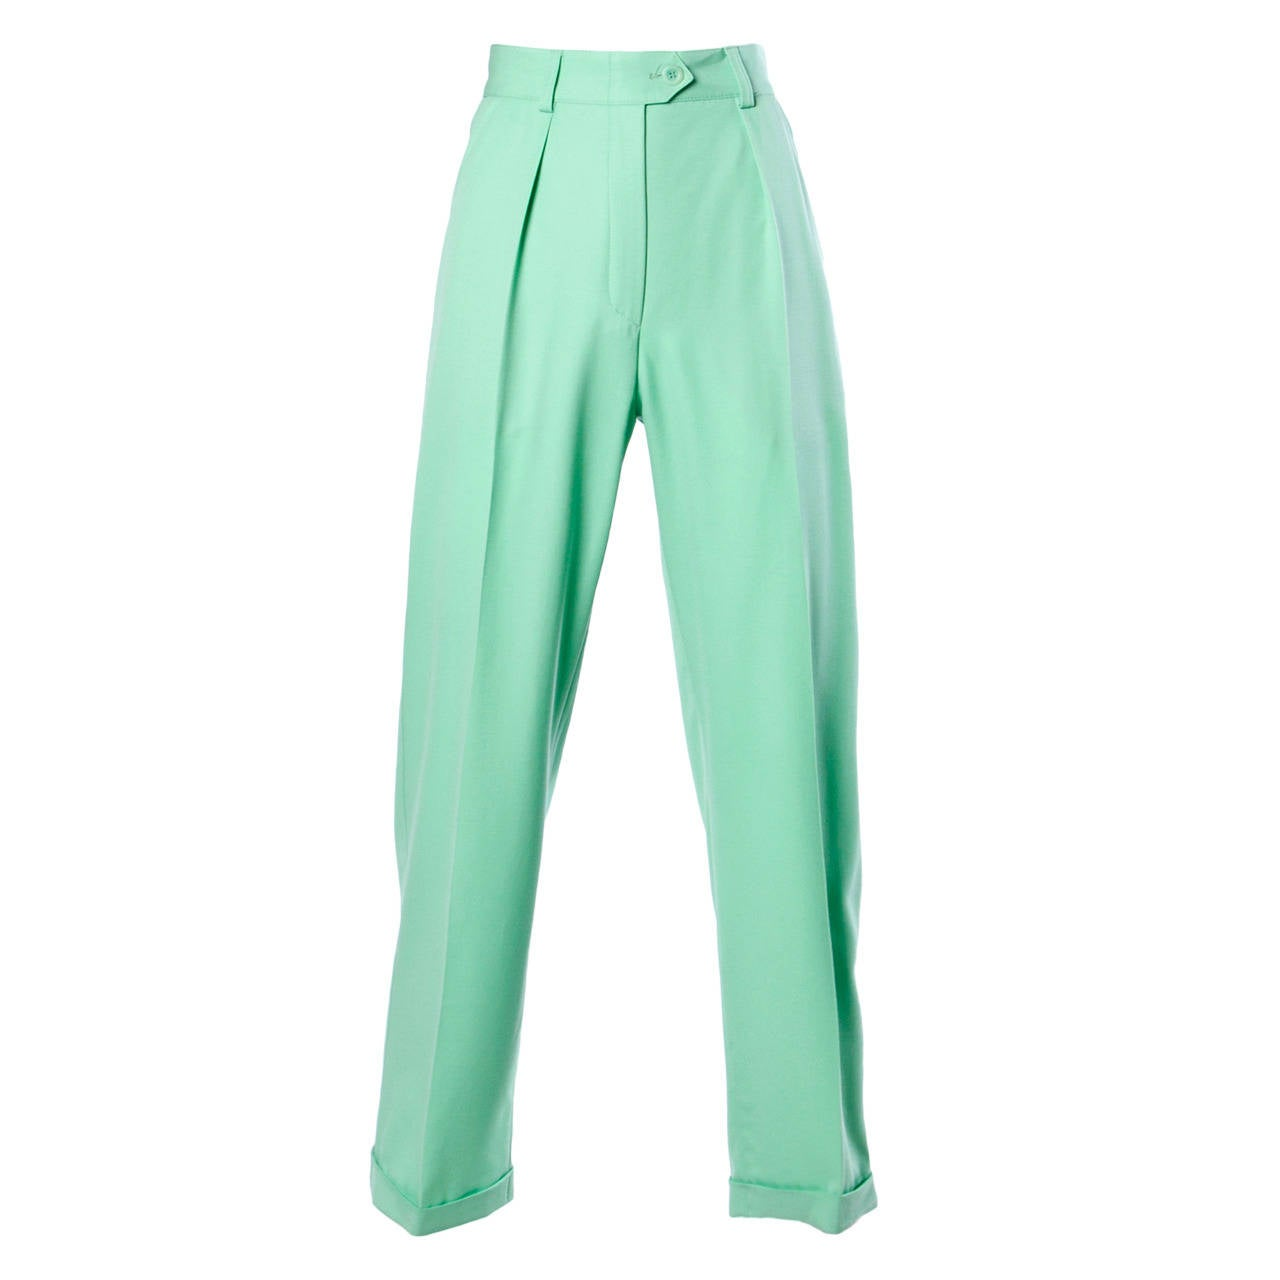 Escada Vintage 1990s 90s Mint Green High Waisted Wool Trousers For Sale